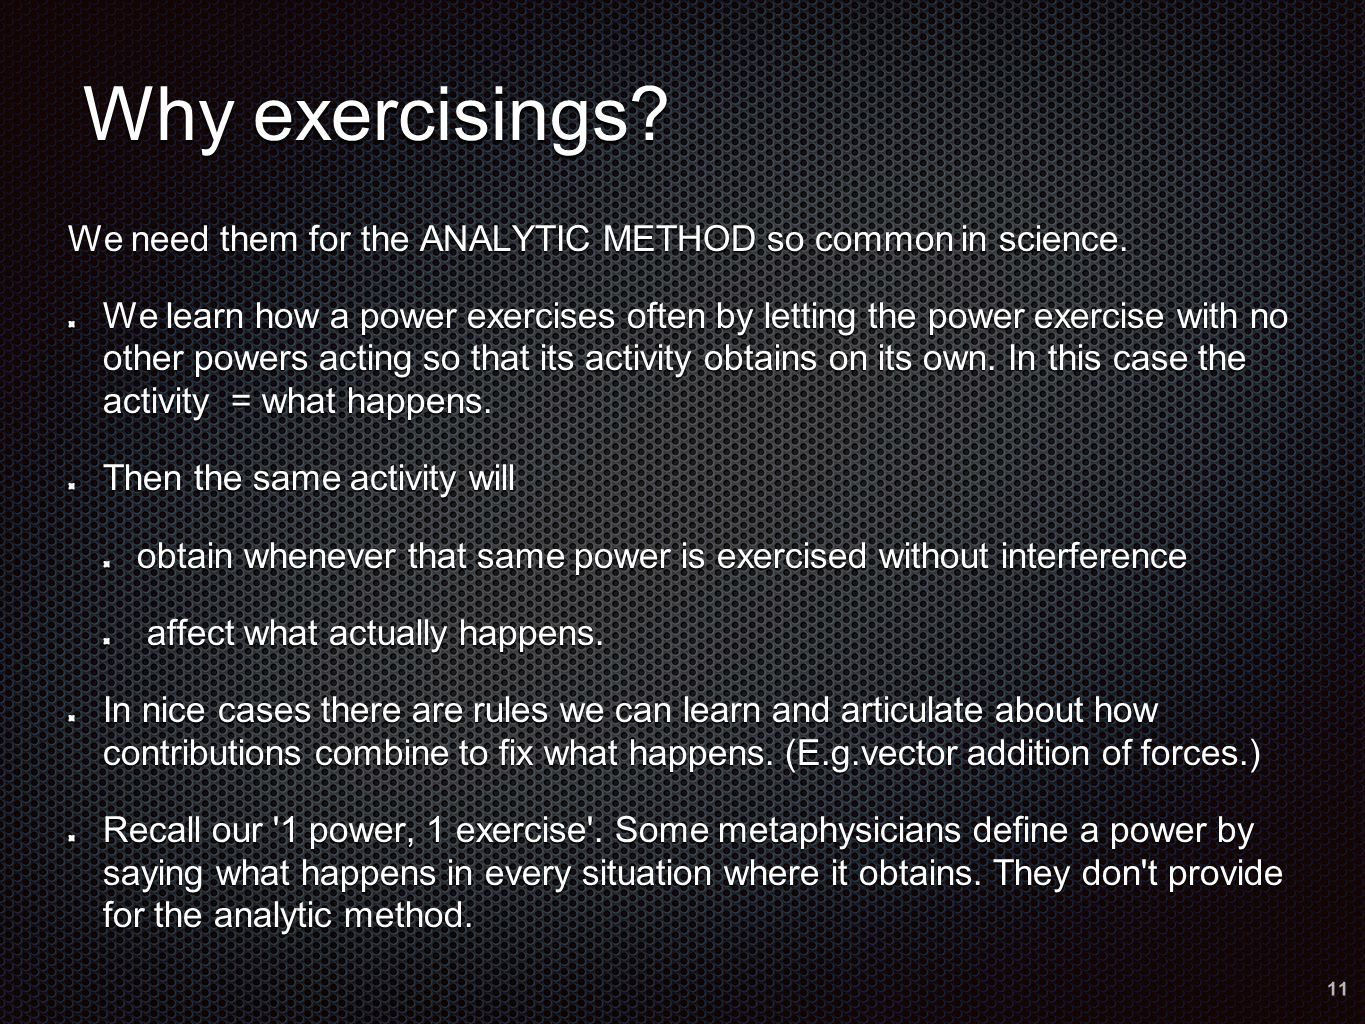 Why exercisings. We need them for the ANALYTIC METHOD so common in science.